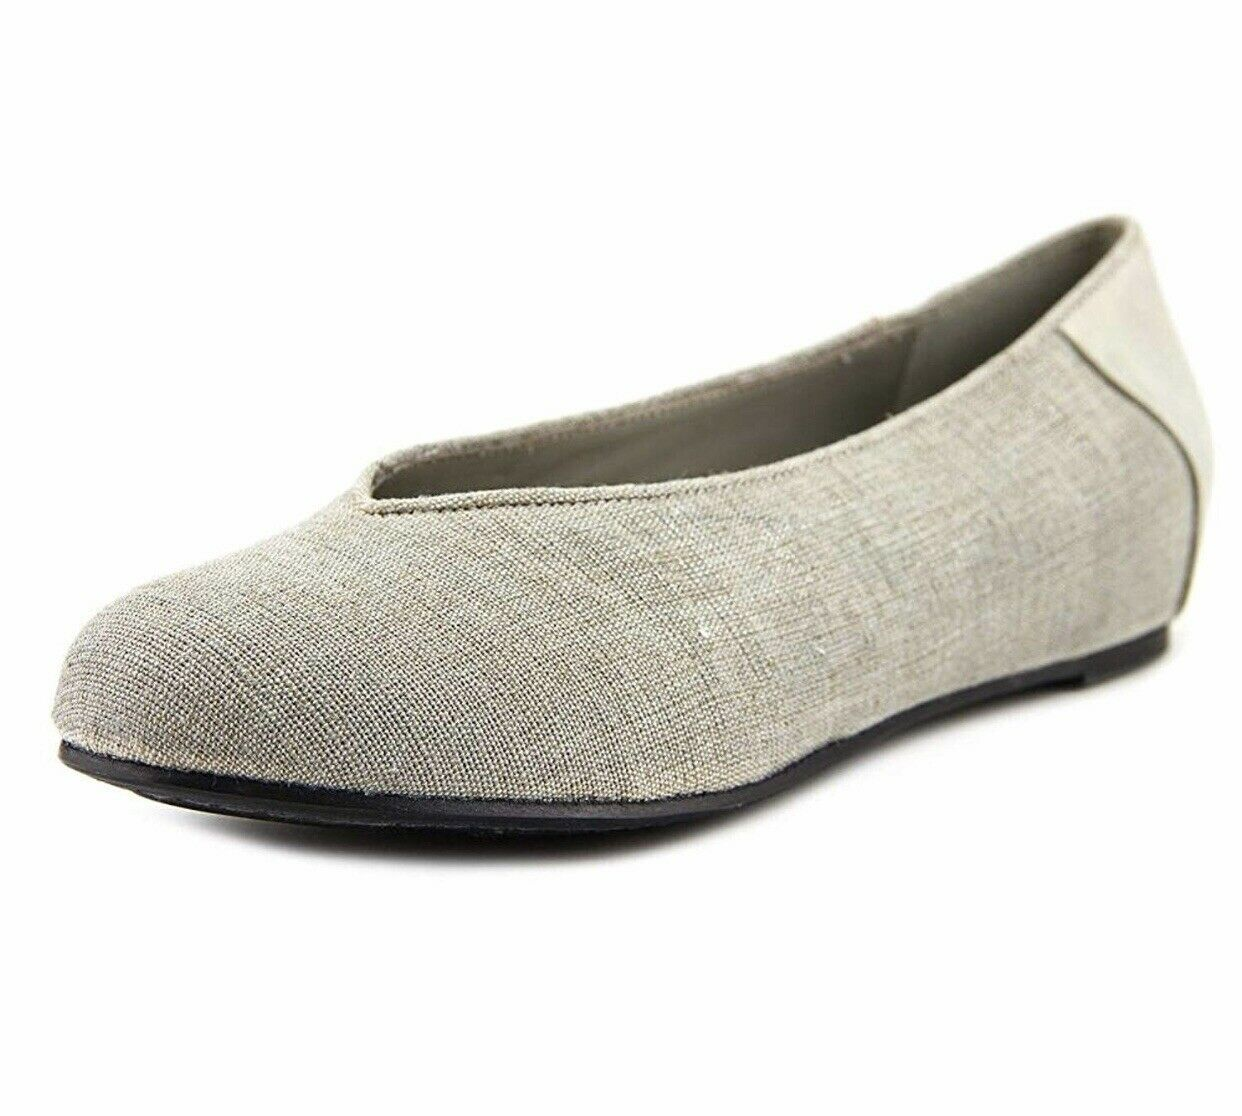 Eileen Fisher Patch 1 Toile Ballerines Femme Taille 5, gris 2237